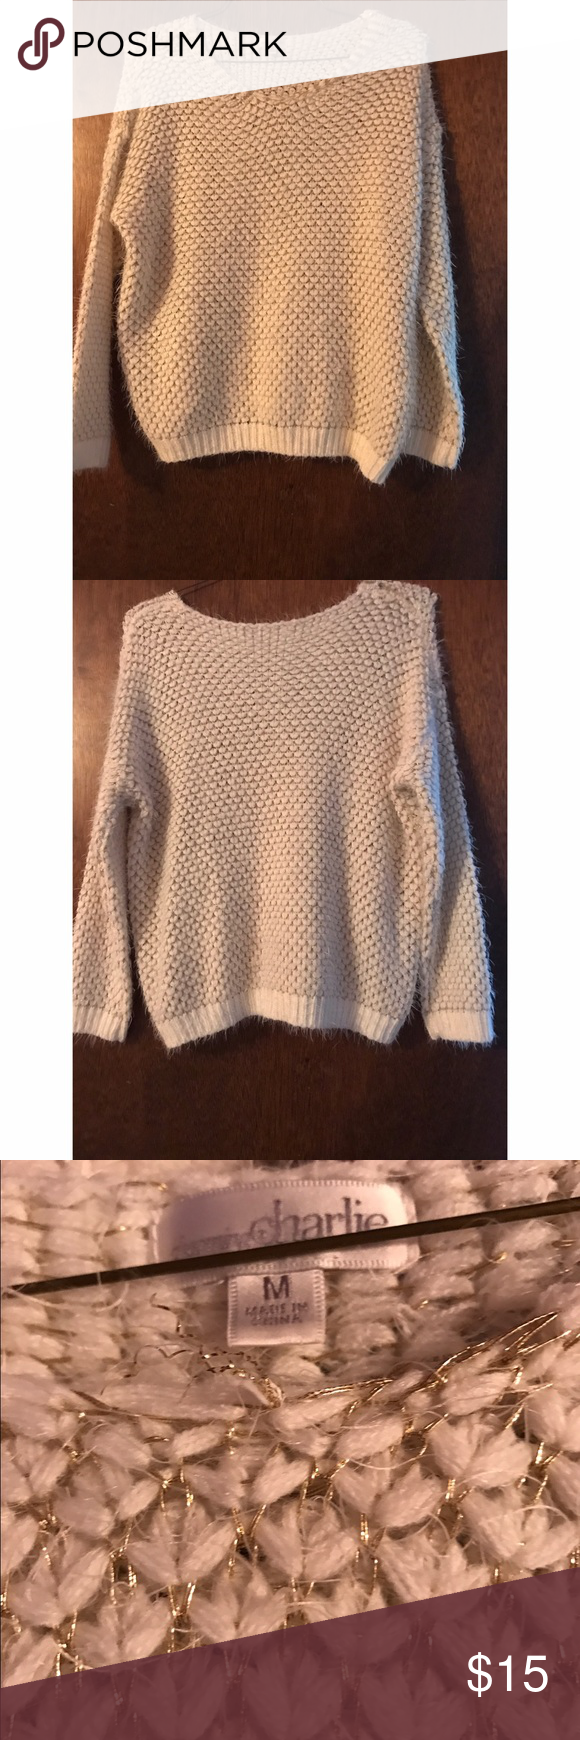 White Fluffy Sweater with Gold Thread Charming Charlie White Puffy Sweater with Gold Thread. Size medium. Very comfortable fit, not tight fitting. True to size, although can also fit a large. Charming Charlie Sweaters Crew & Scoop Necks